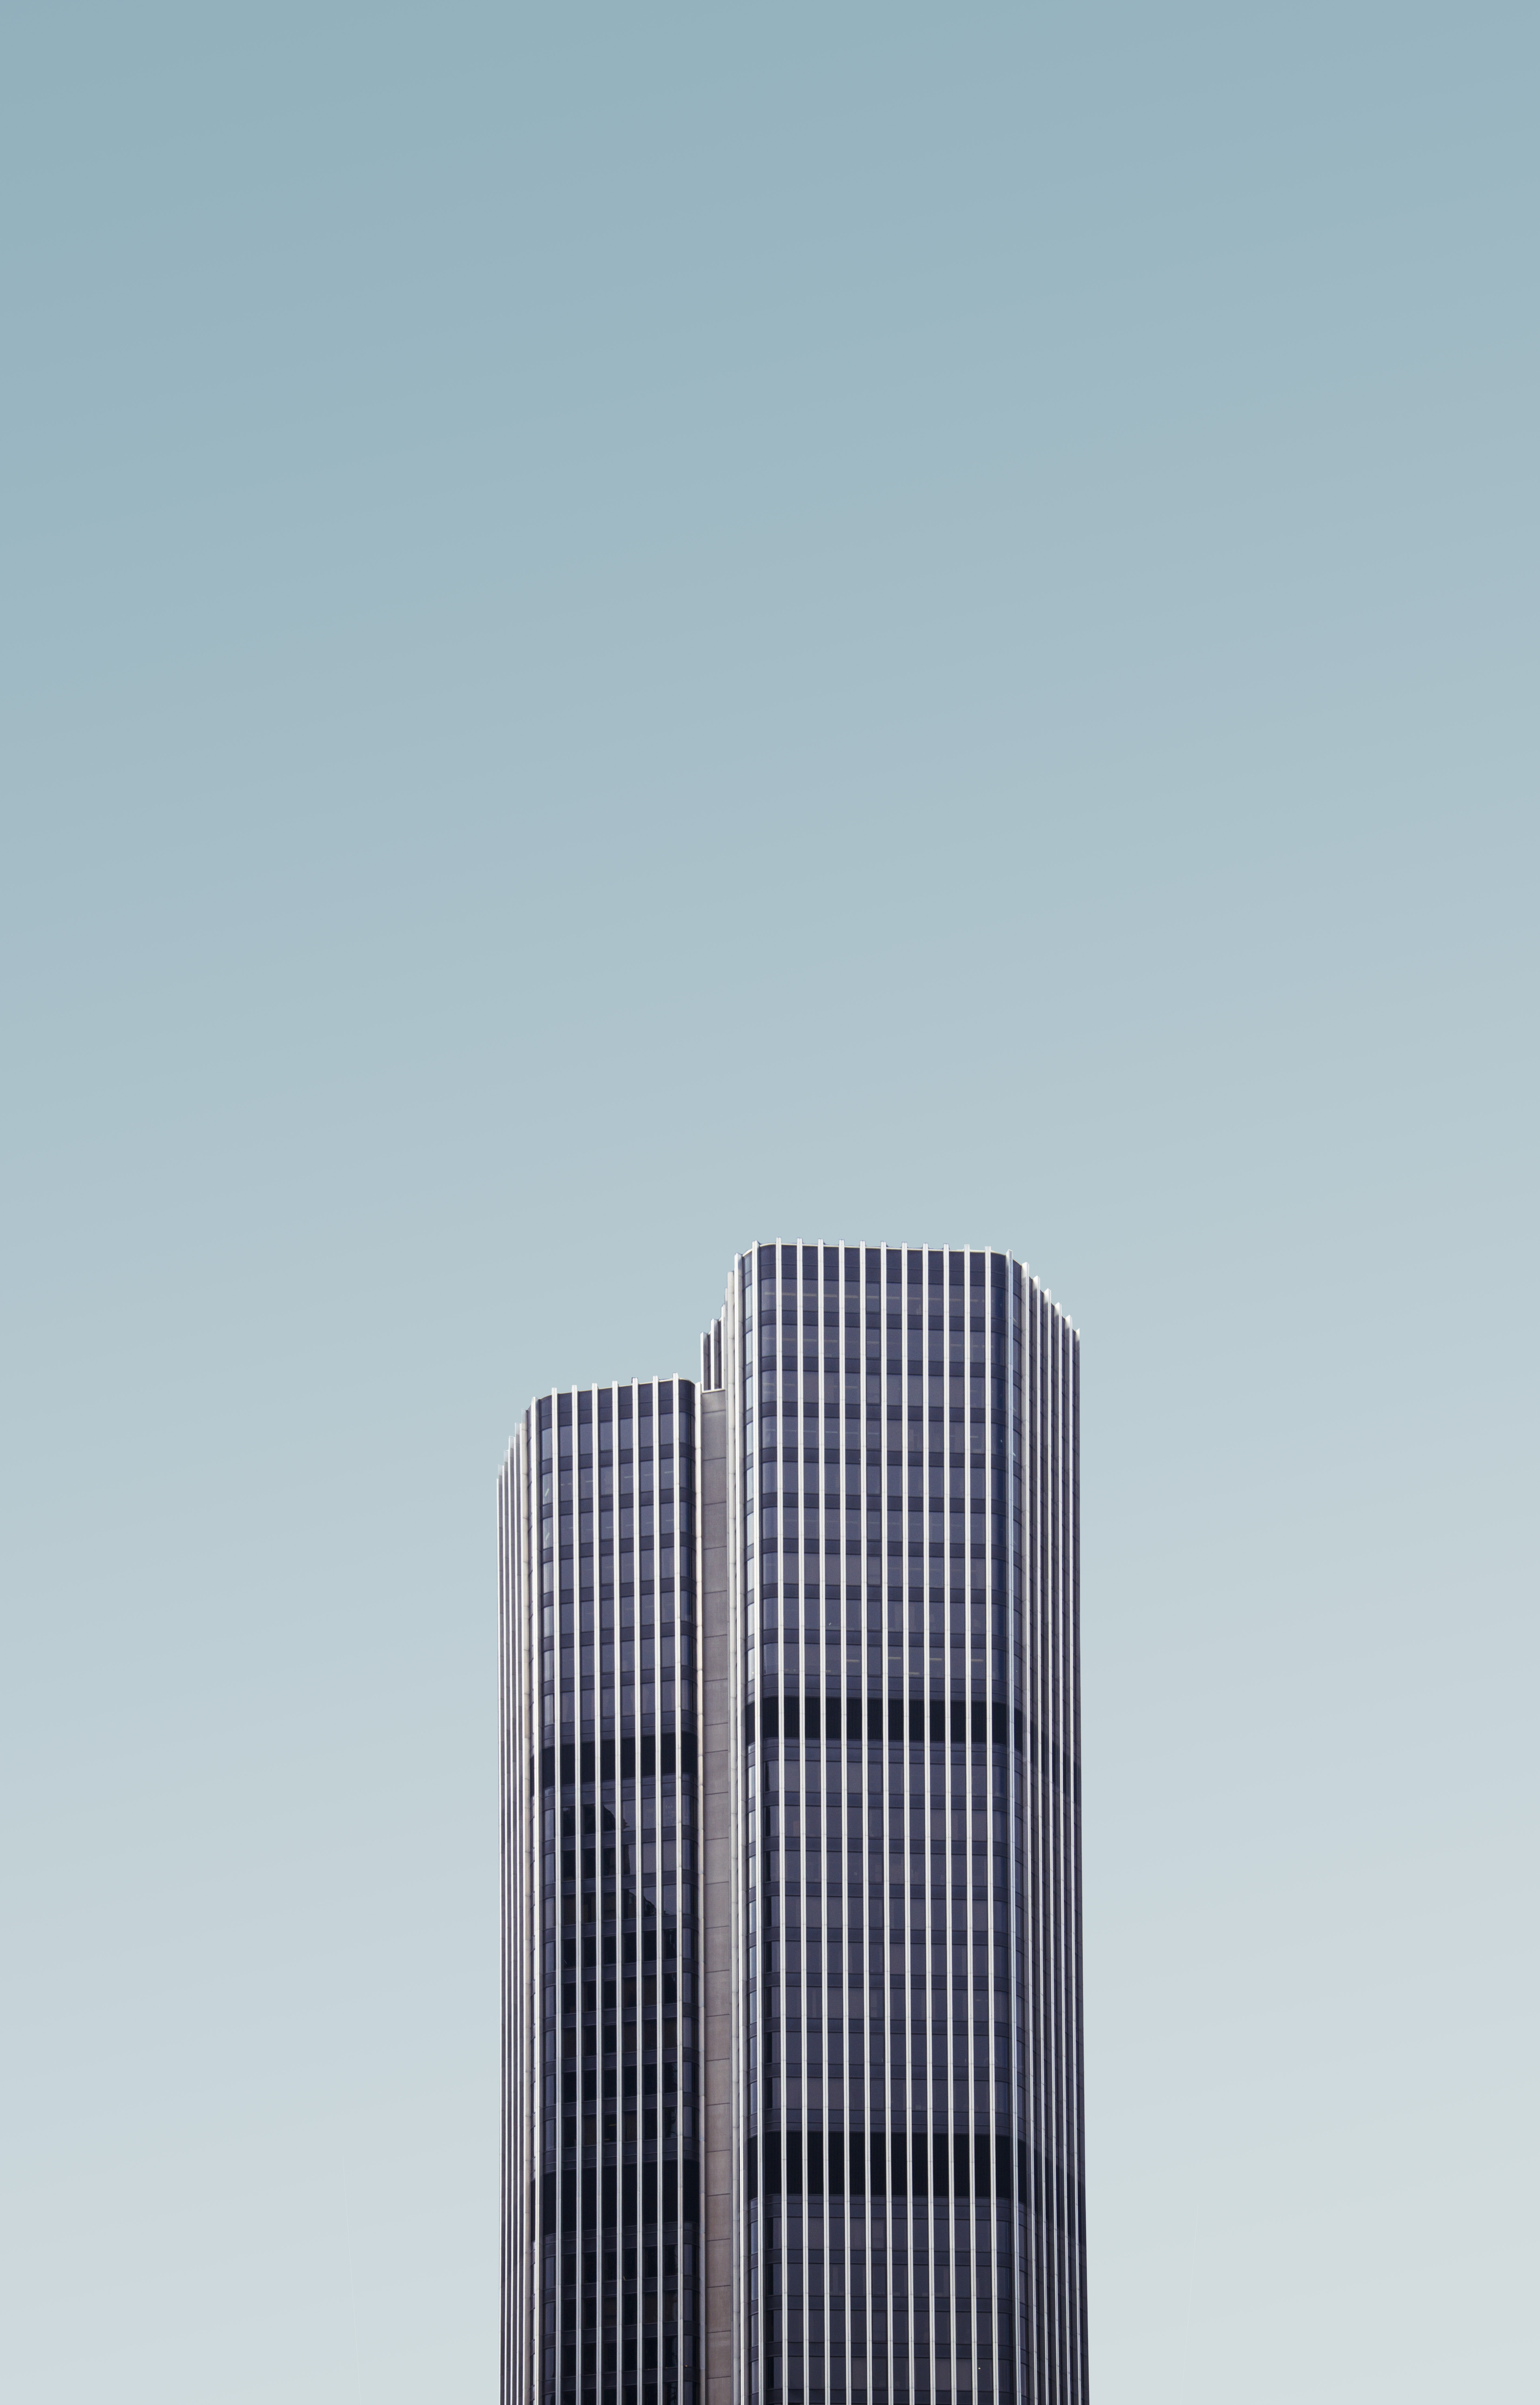 grey and white high-rise building under white cloudy sky